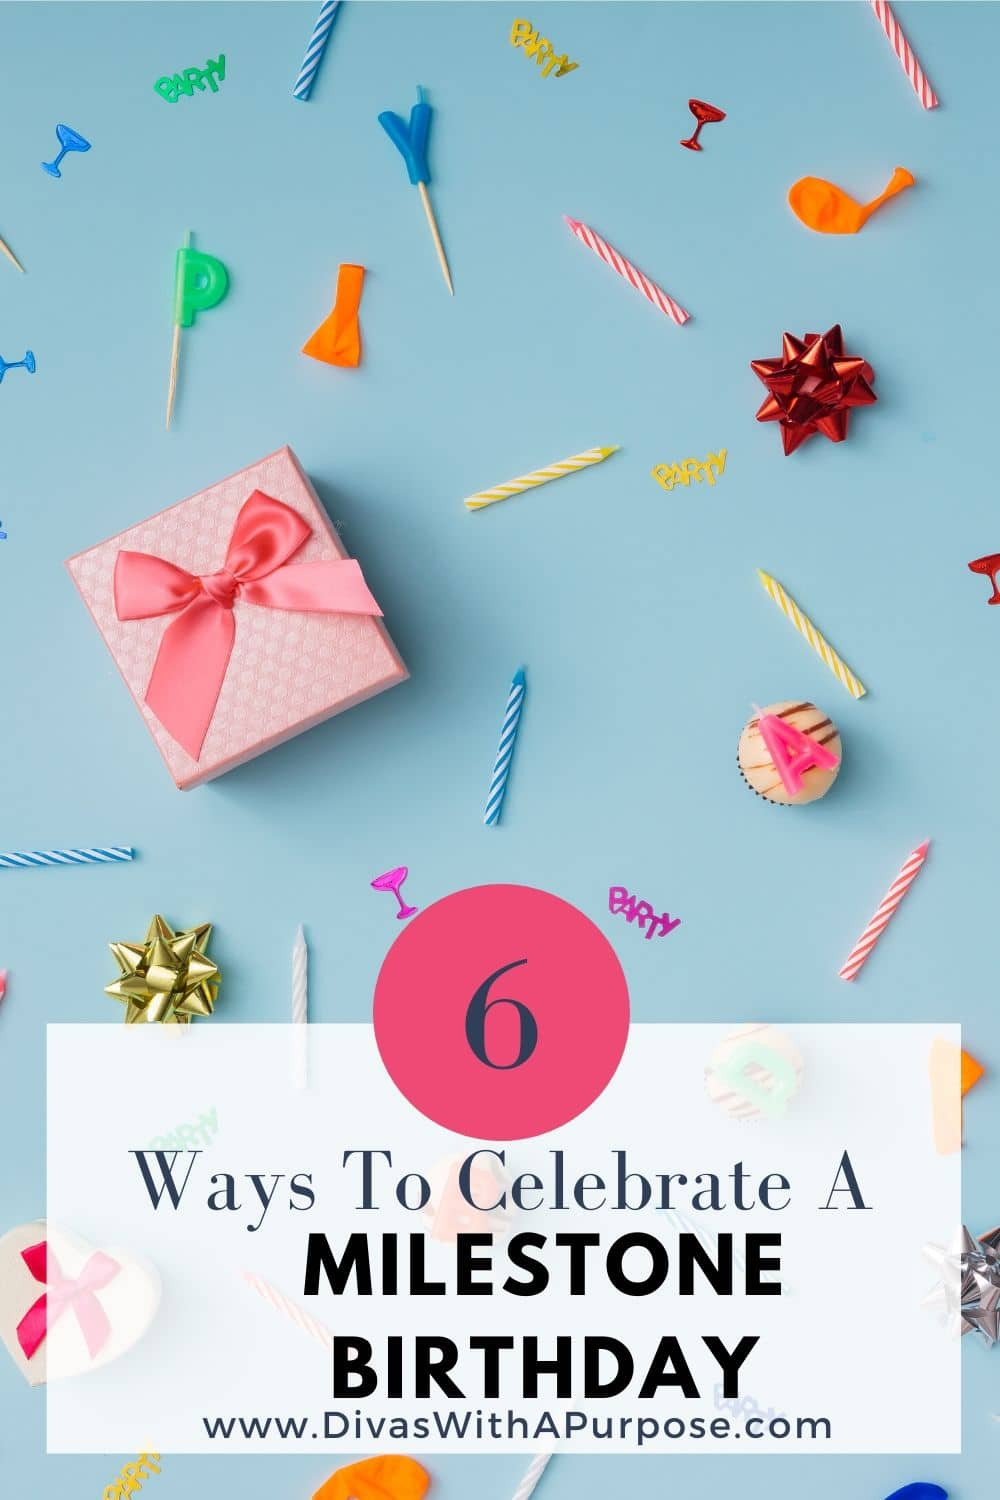 Six ways to celebrate a milestone birthday with your loved ones